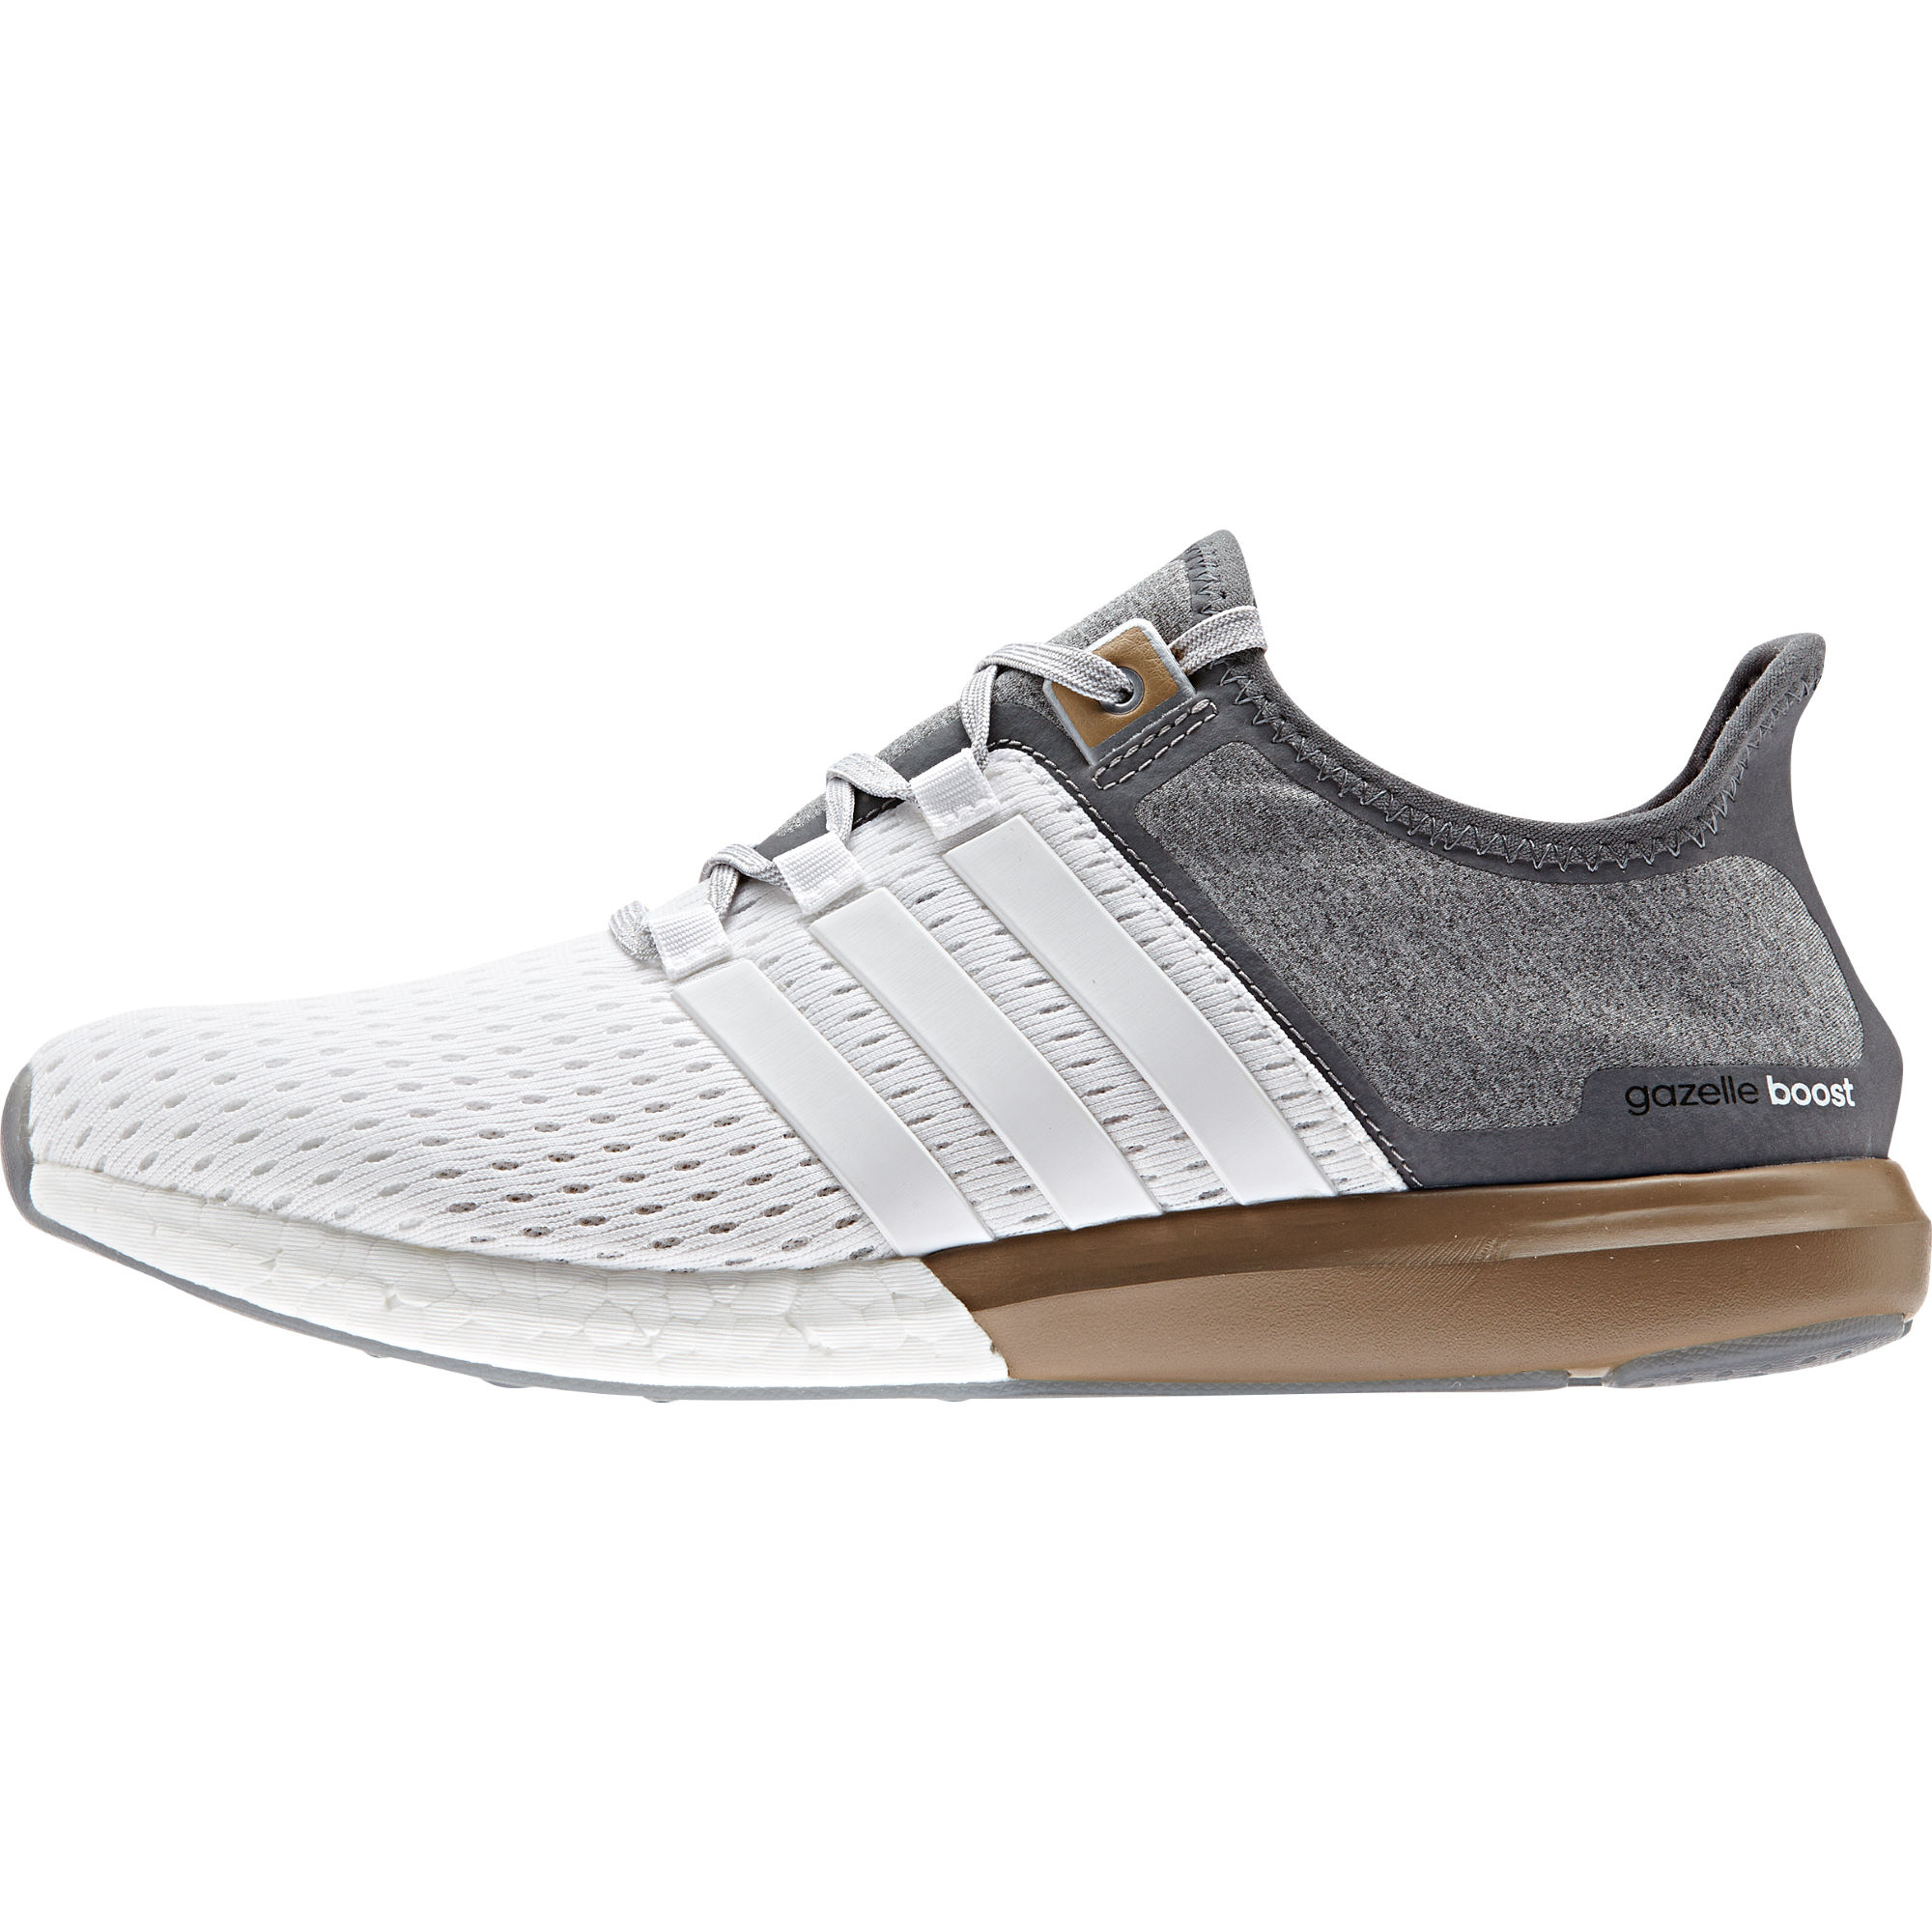 Adidas Gazelle Boost Running Shoes Review